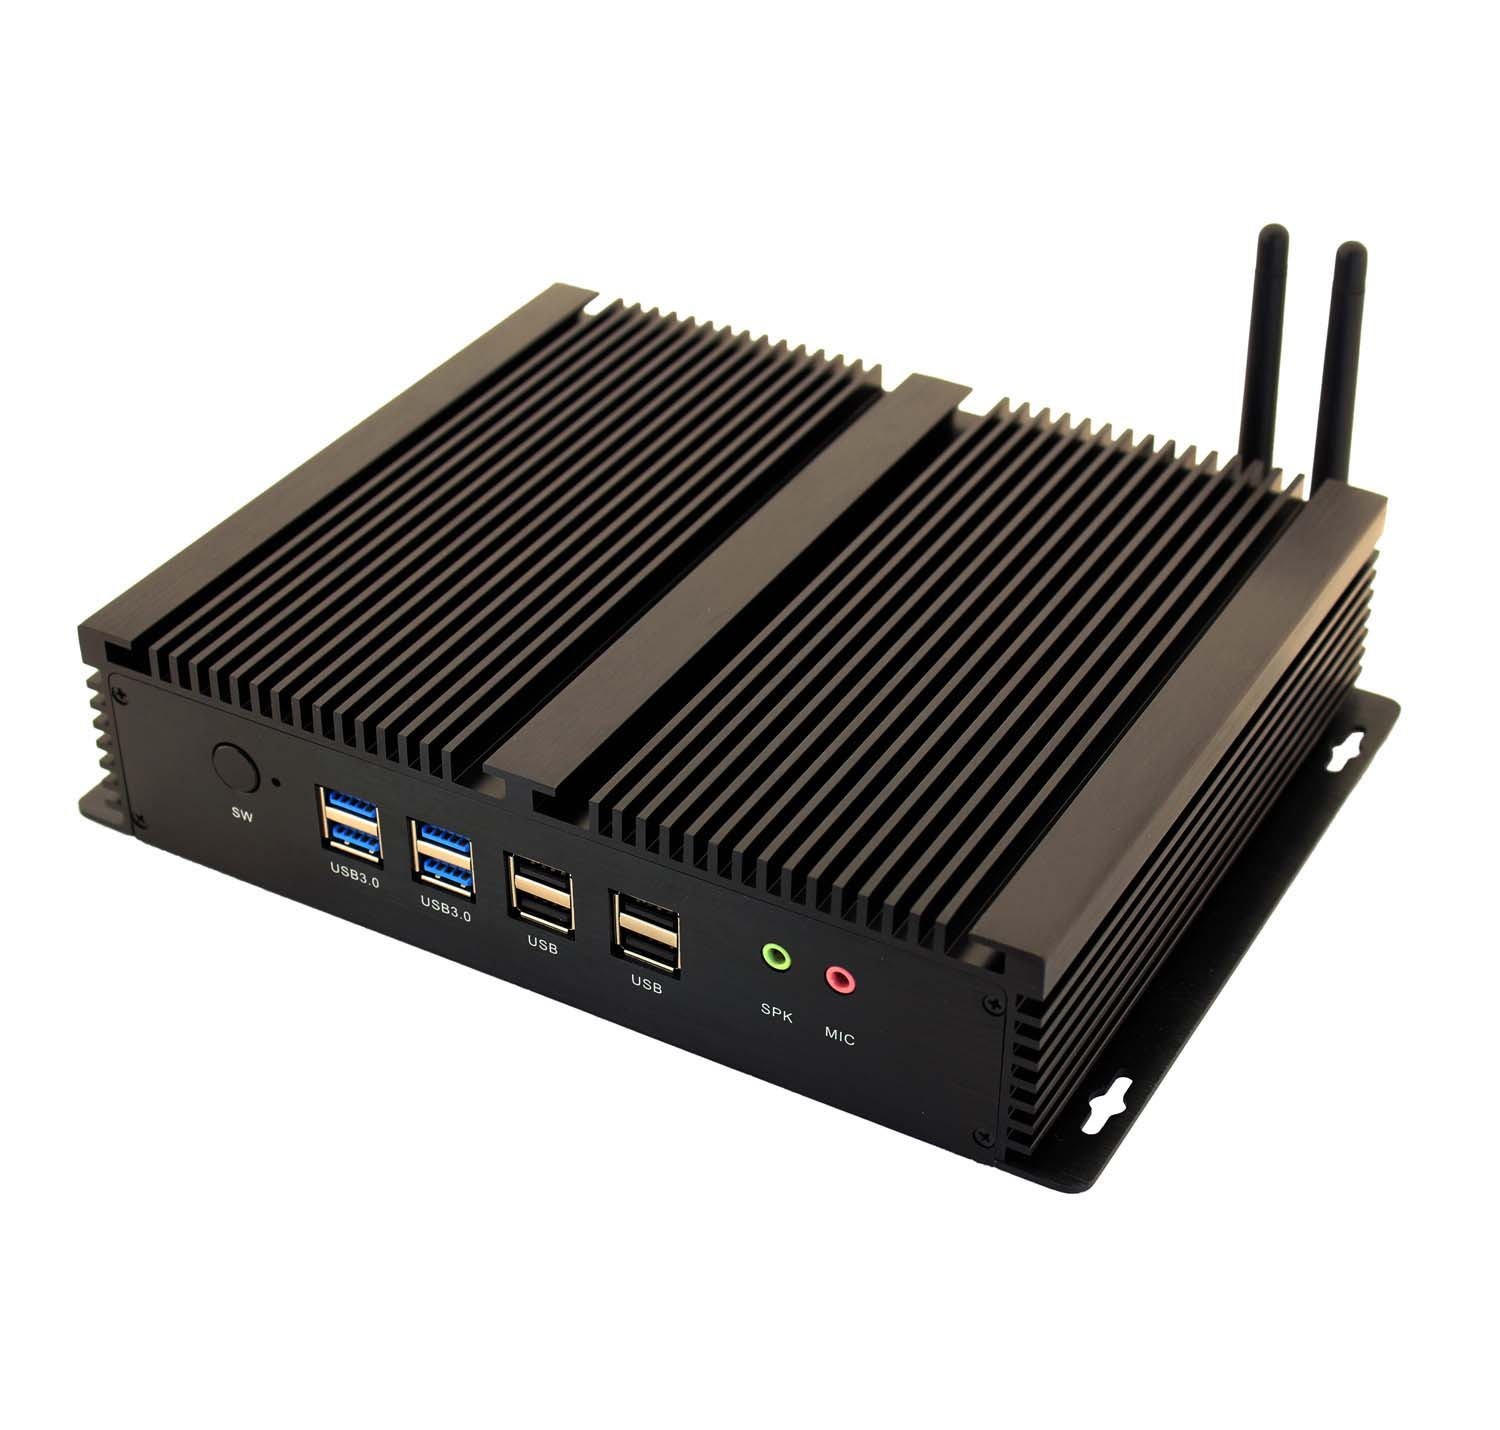 a1touch v1 i3 i7 passive cooled mini pc a1touch. Black Bedroom Furniture Sets. Home Design Ideas